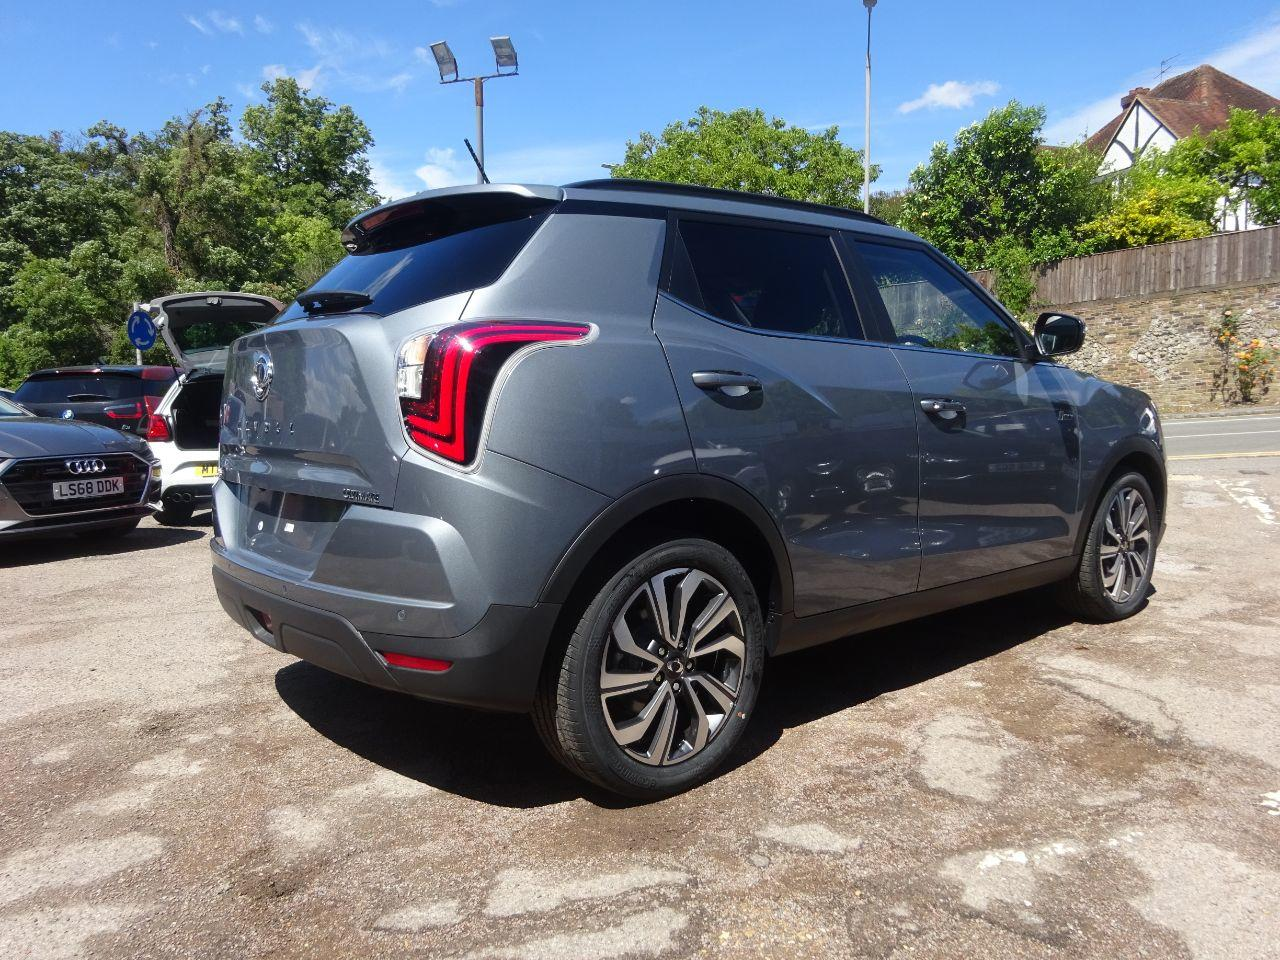 2020 SsangYong Tivoli 1.5 Ultimate  Auto - H/LEATHER - NAV - BLUETOOTH -